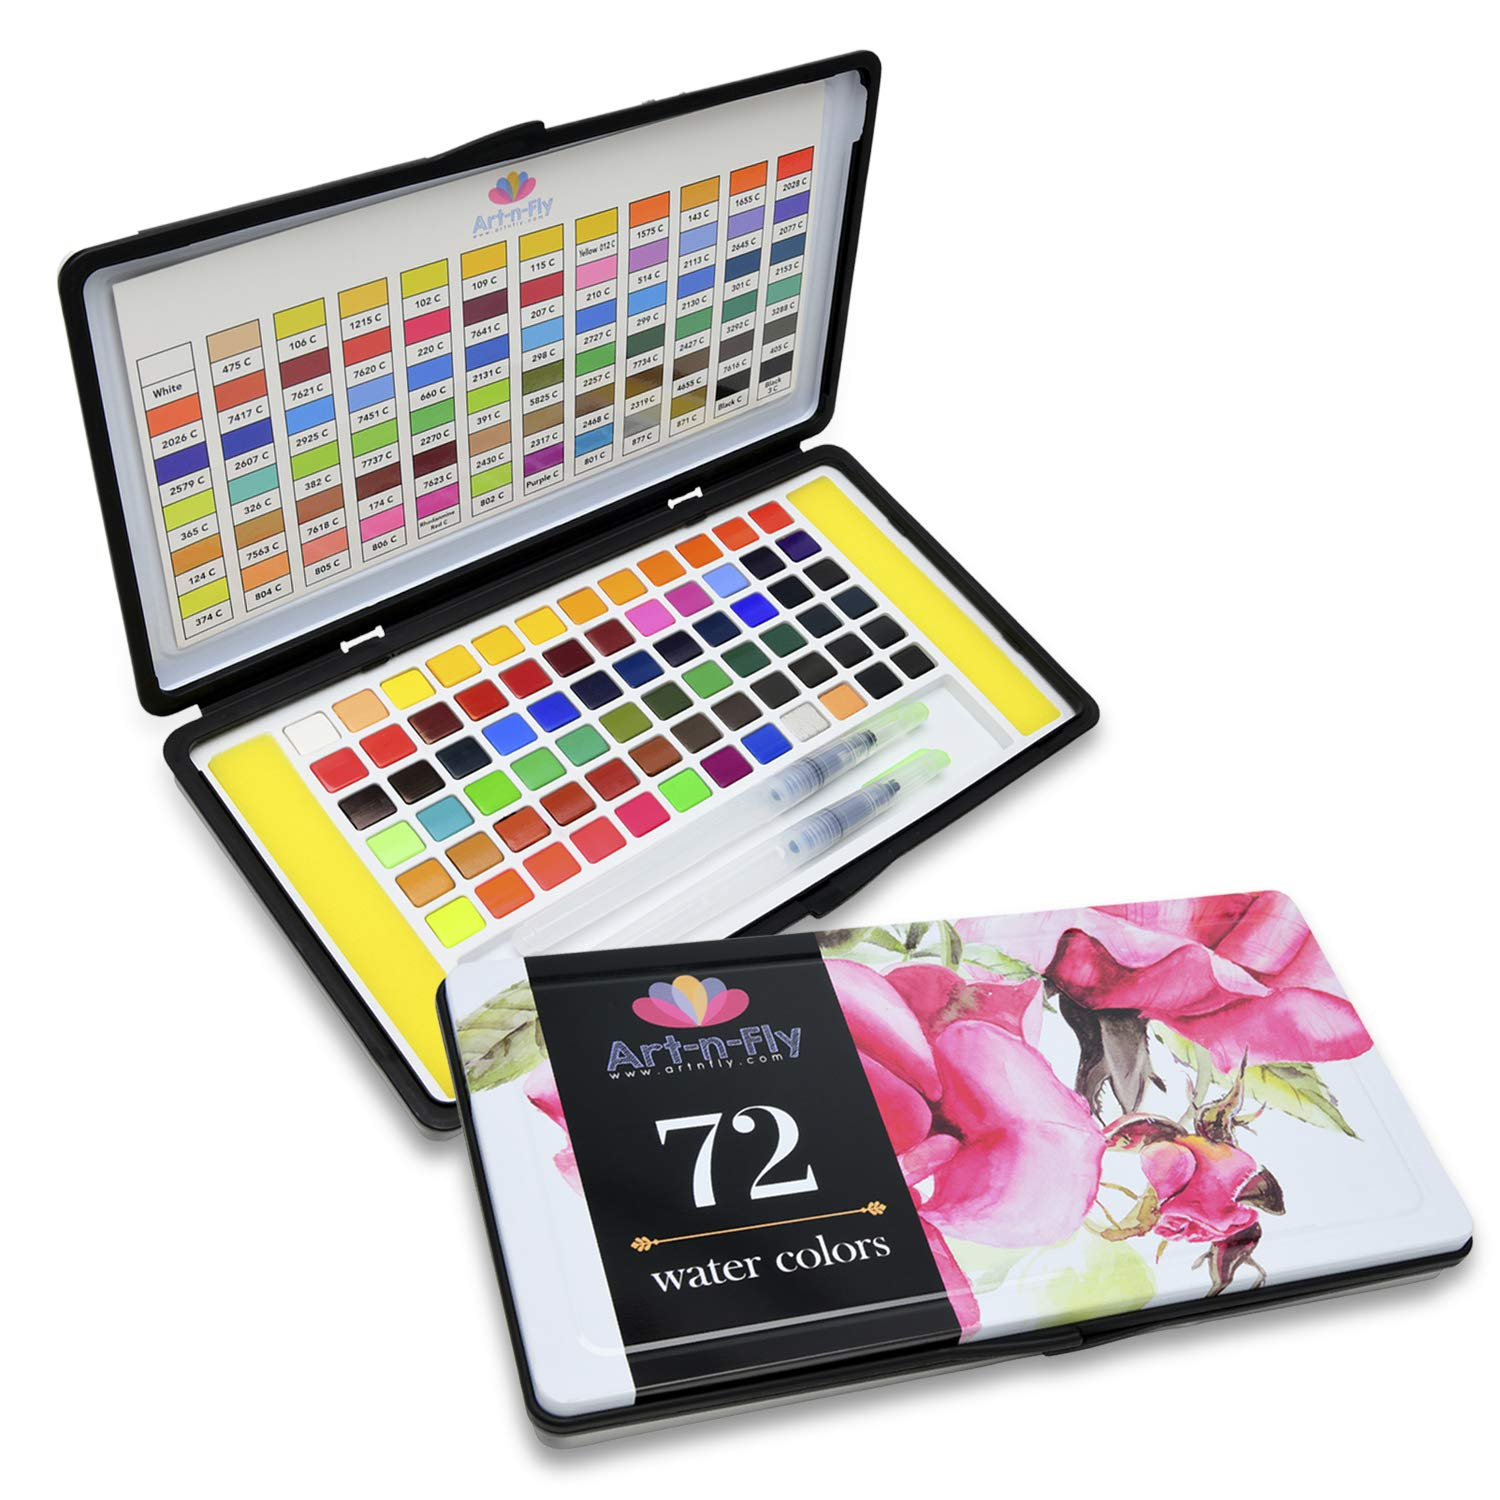 72 Watercolor Paint Set with 2 Water Brushes and 72 Vibrant Color Cakes in Tin Box. Includes Skin Tone, Metallic (Gold and Silver) and Pastel Colors - Perfect Gift for Artist